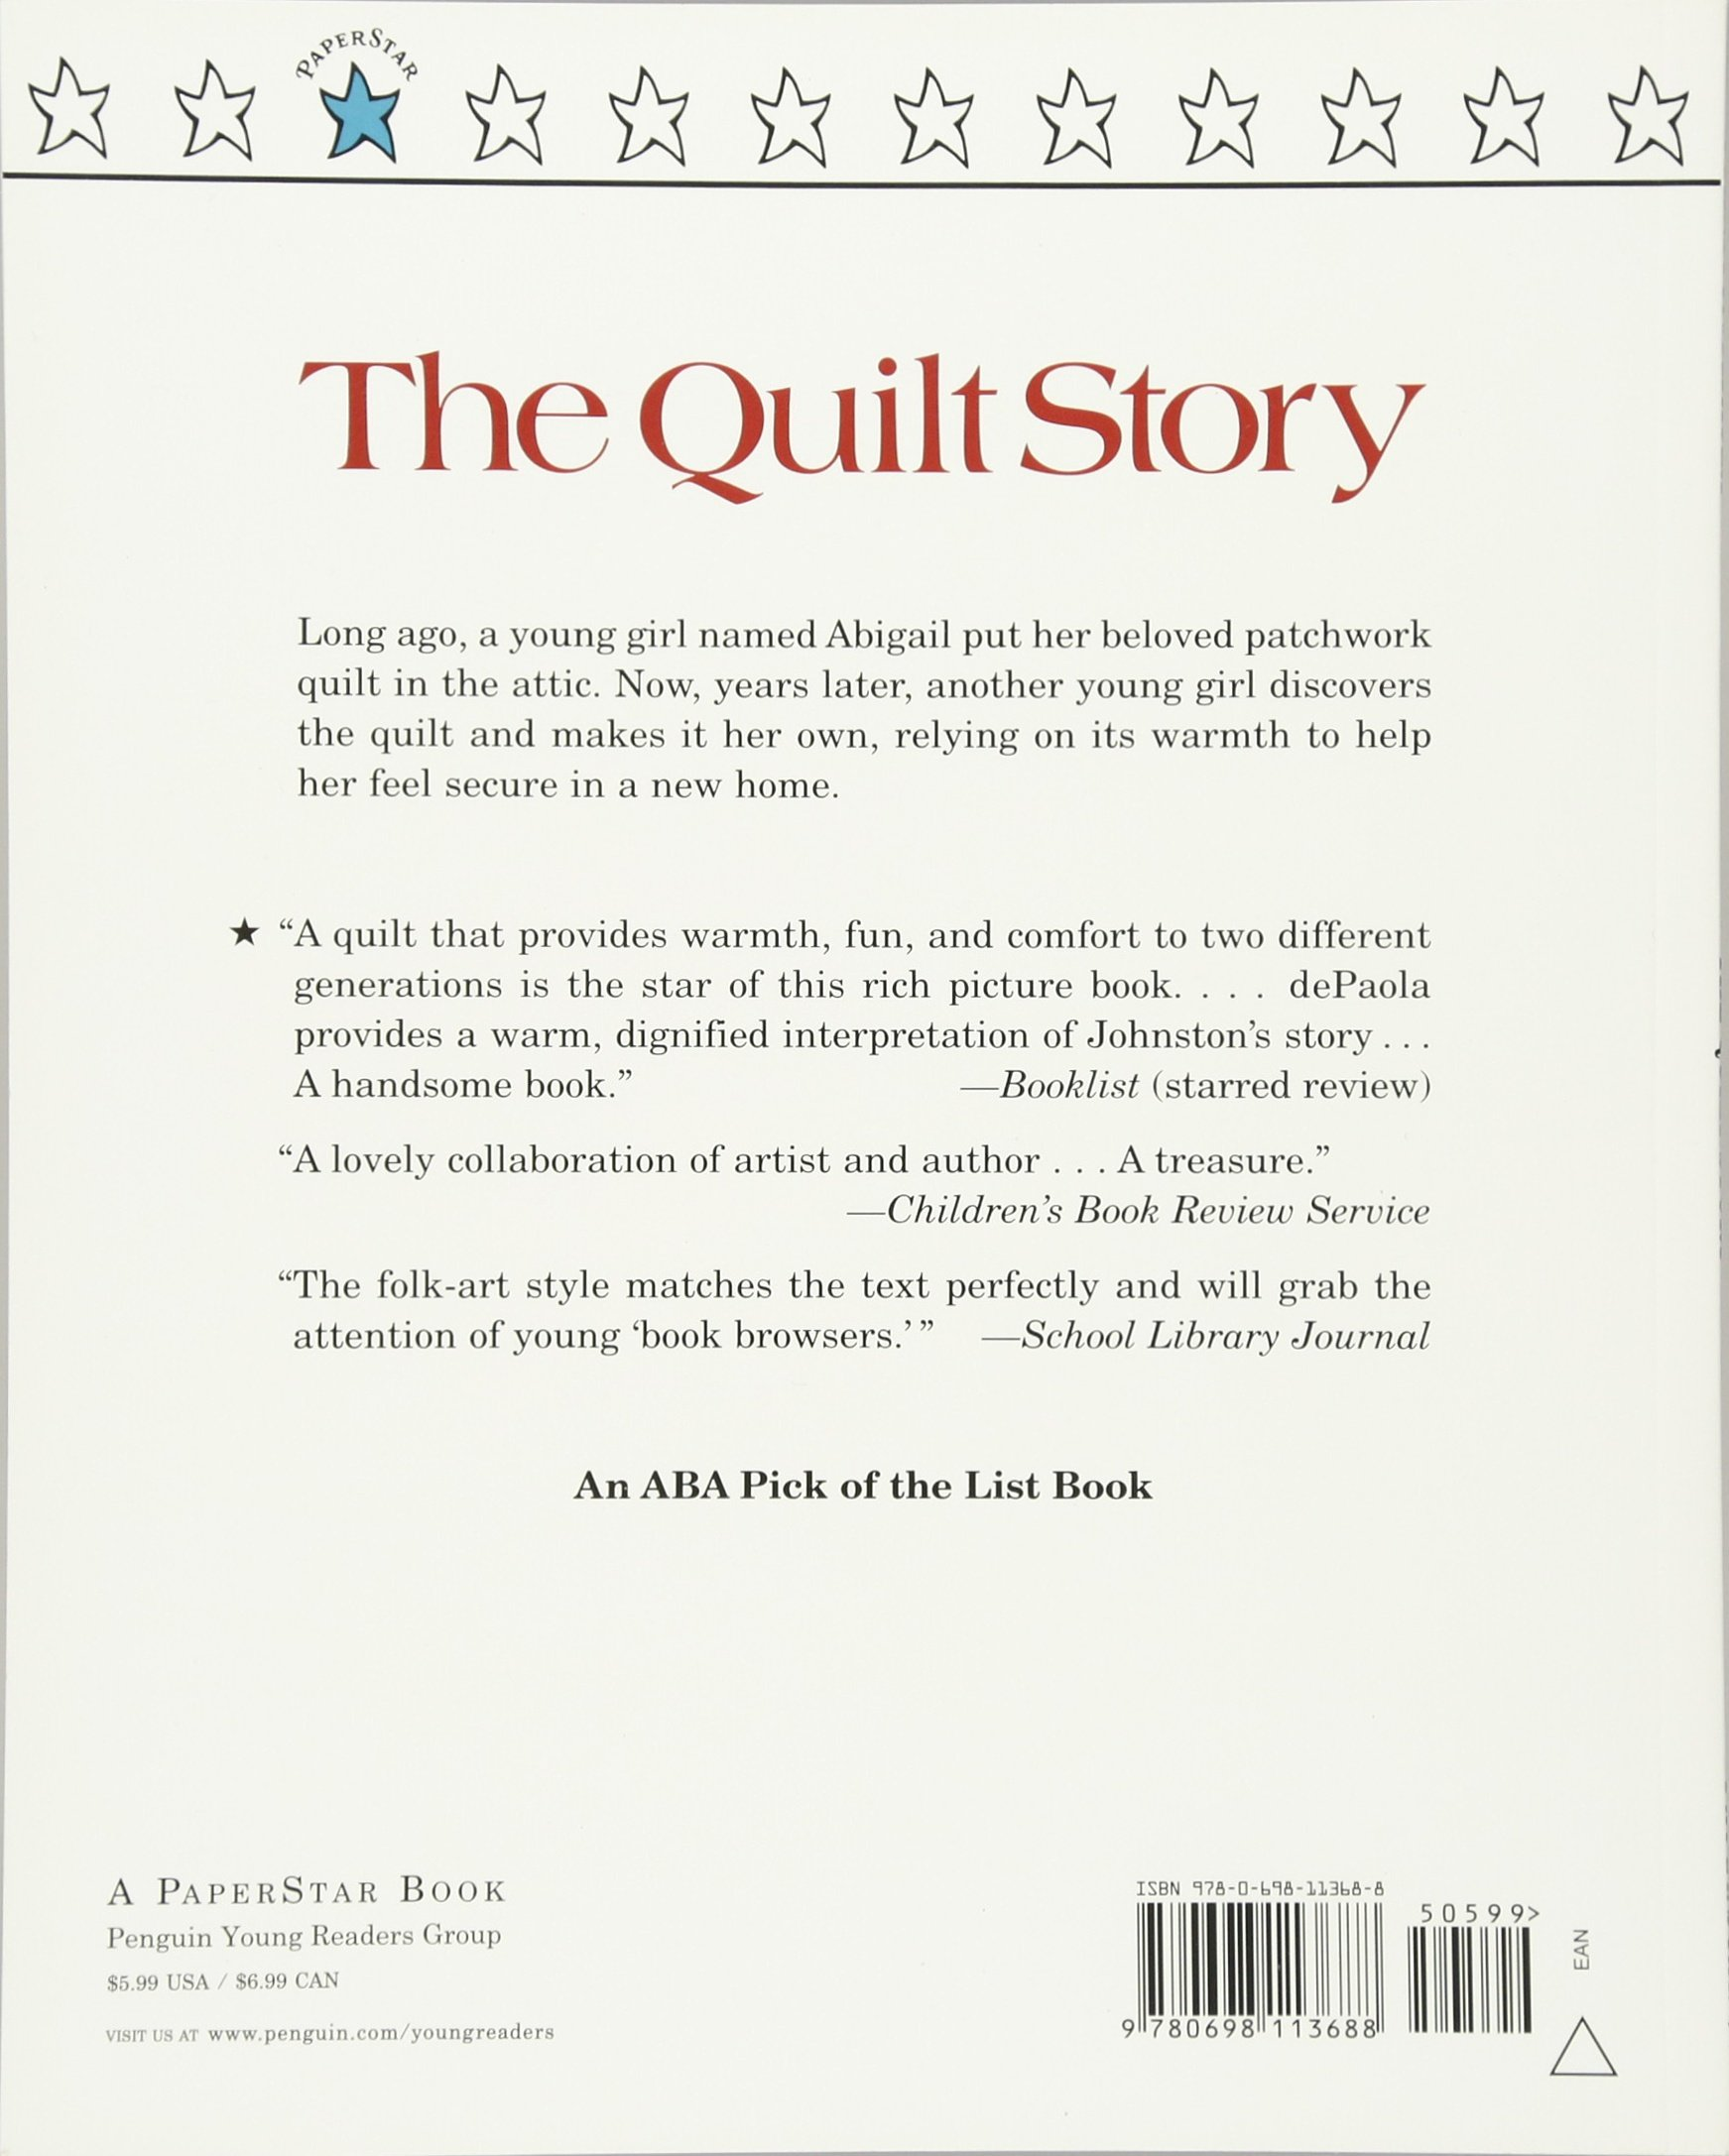 the quilt story tony johnston tomie depaola 9780698113688